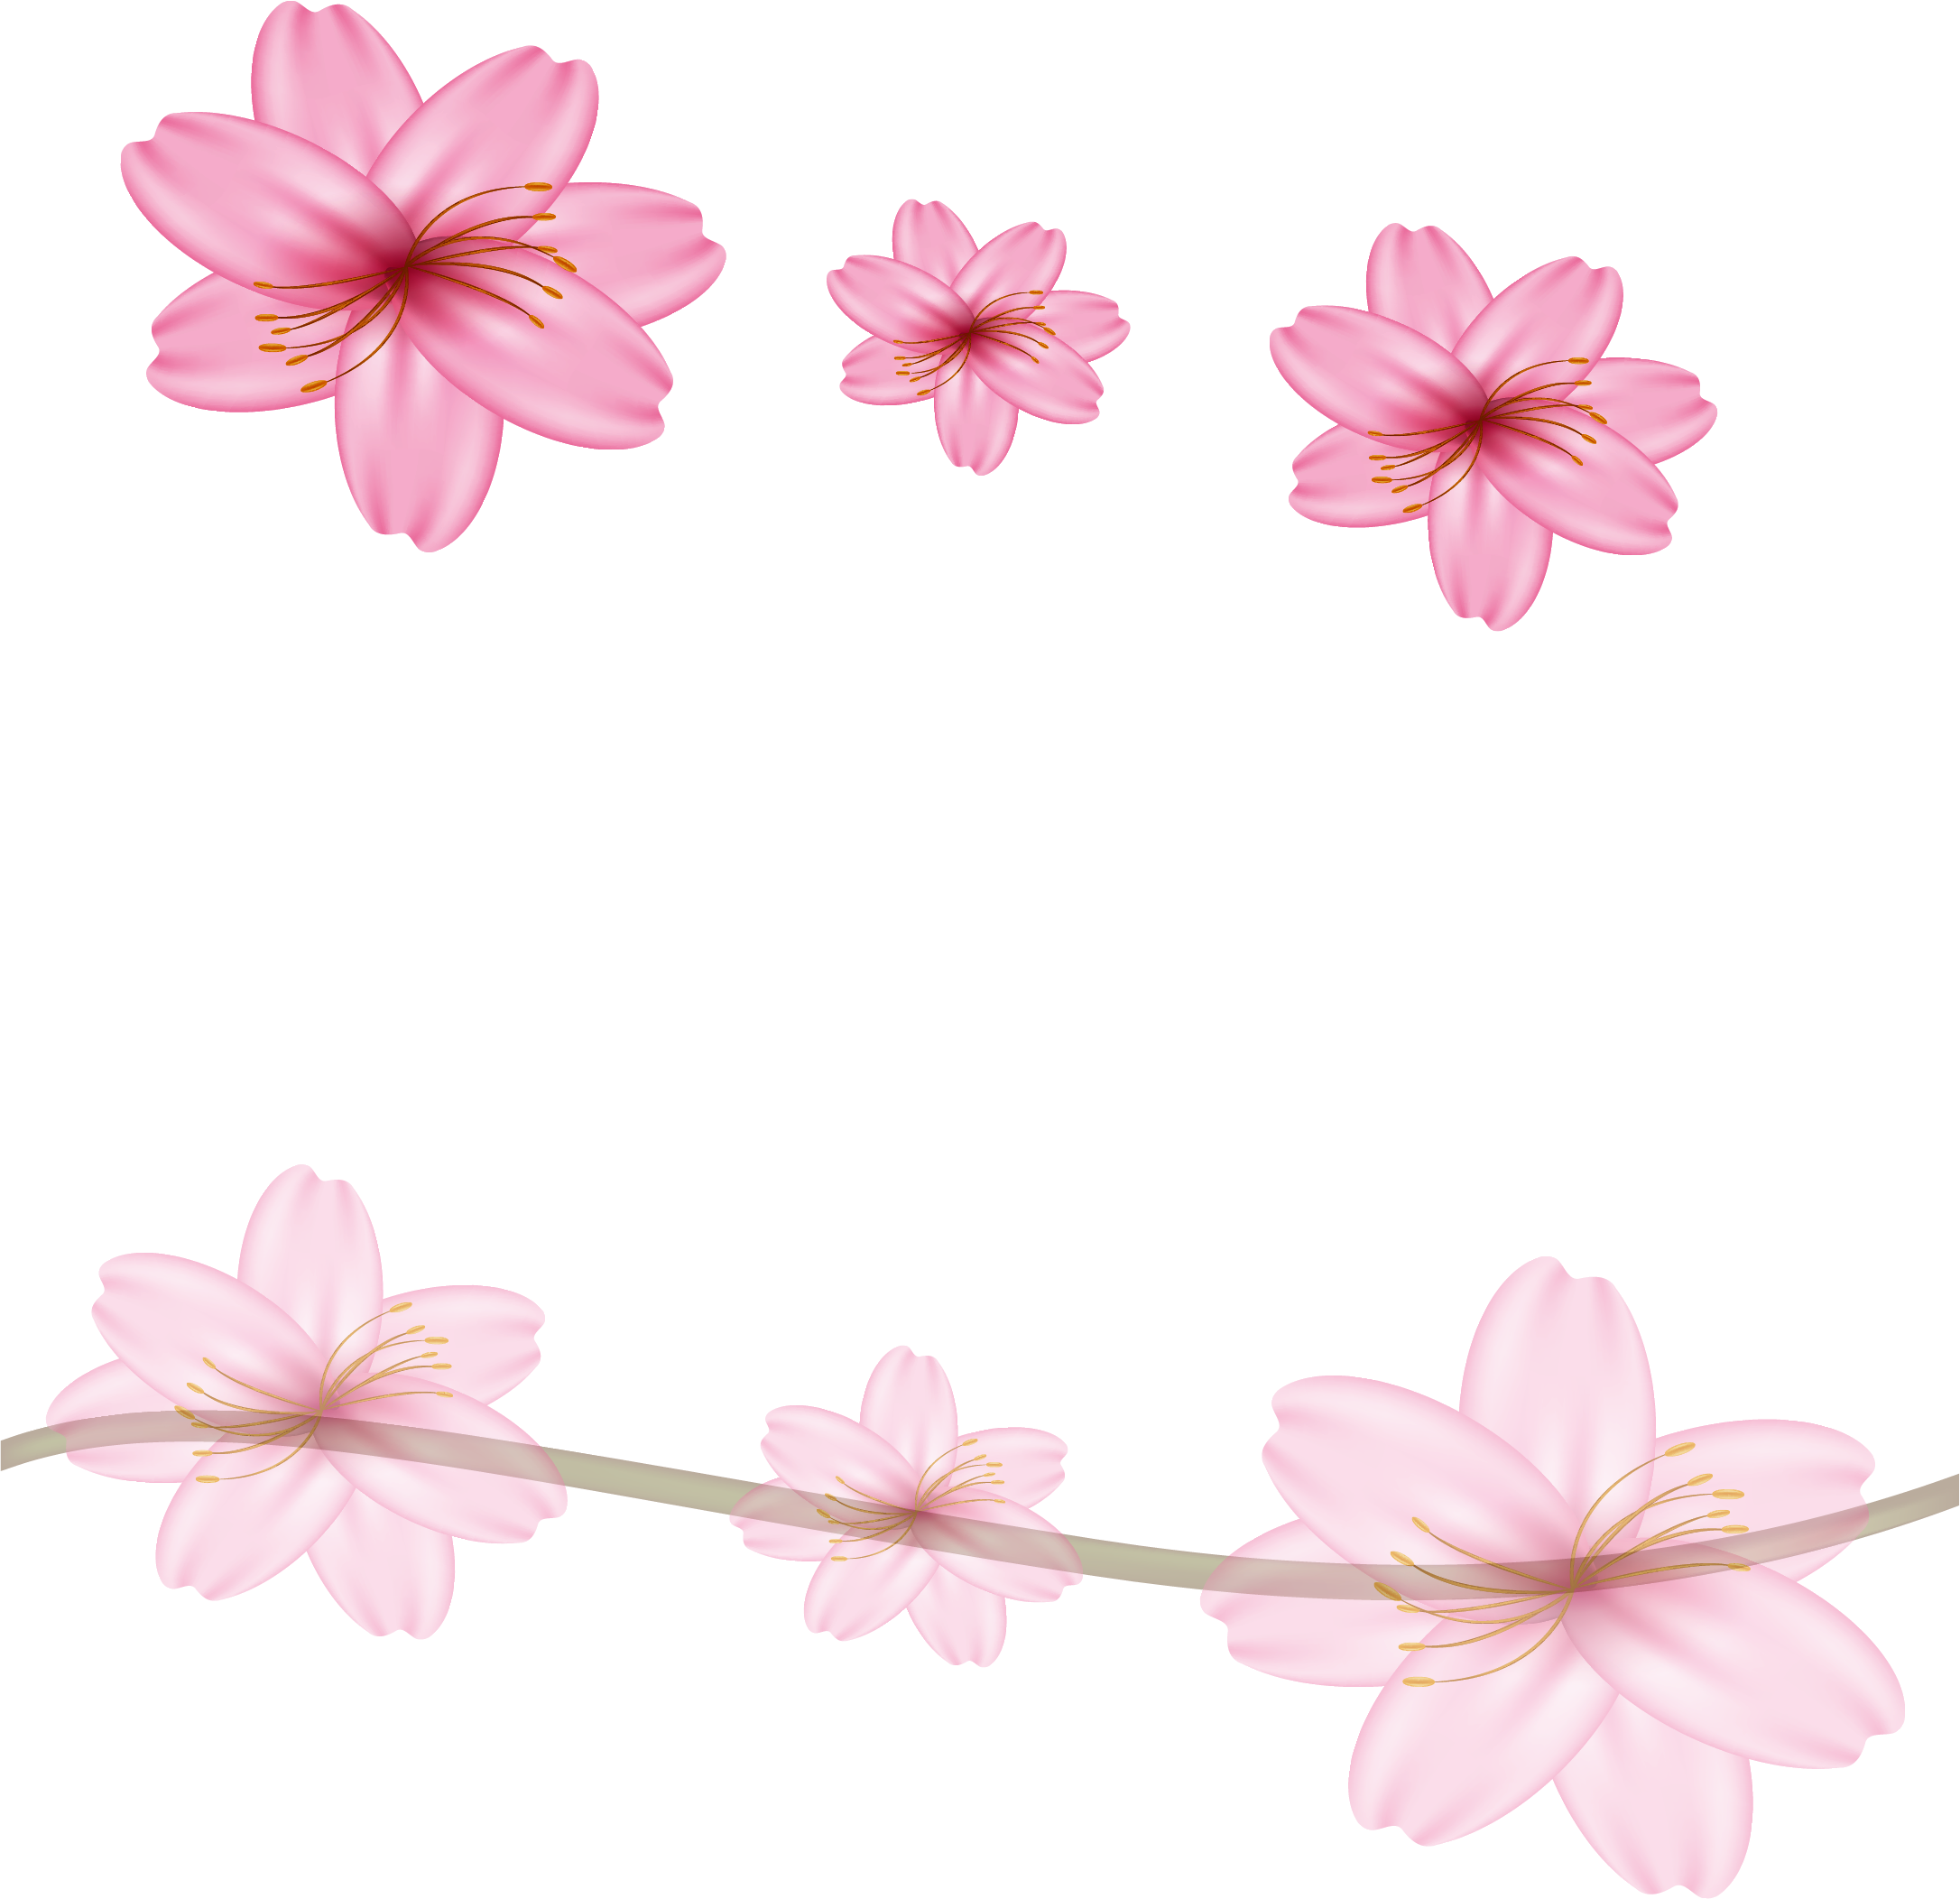 Cherry blossom border png. Floral design flower pink